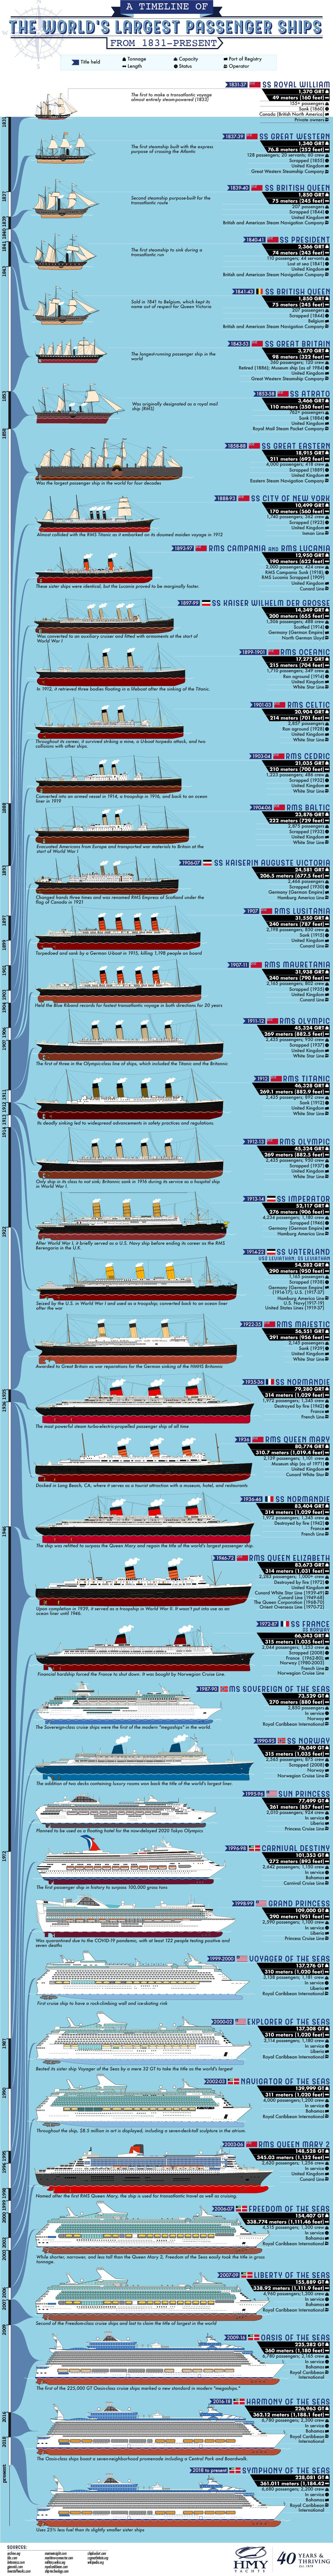 an infographic showing a timeline of the largest passenger ships in the world, from 1831 to the present day